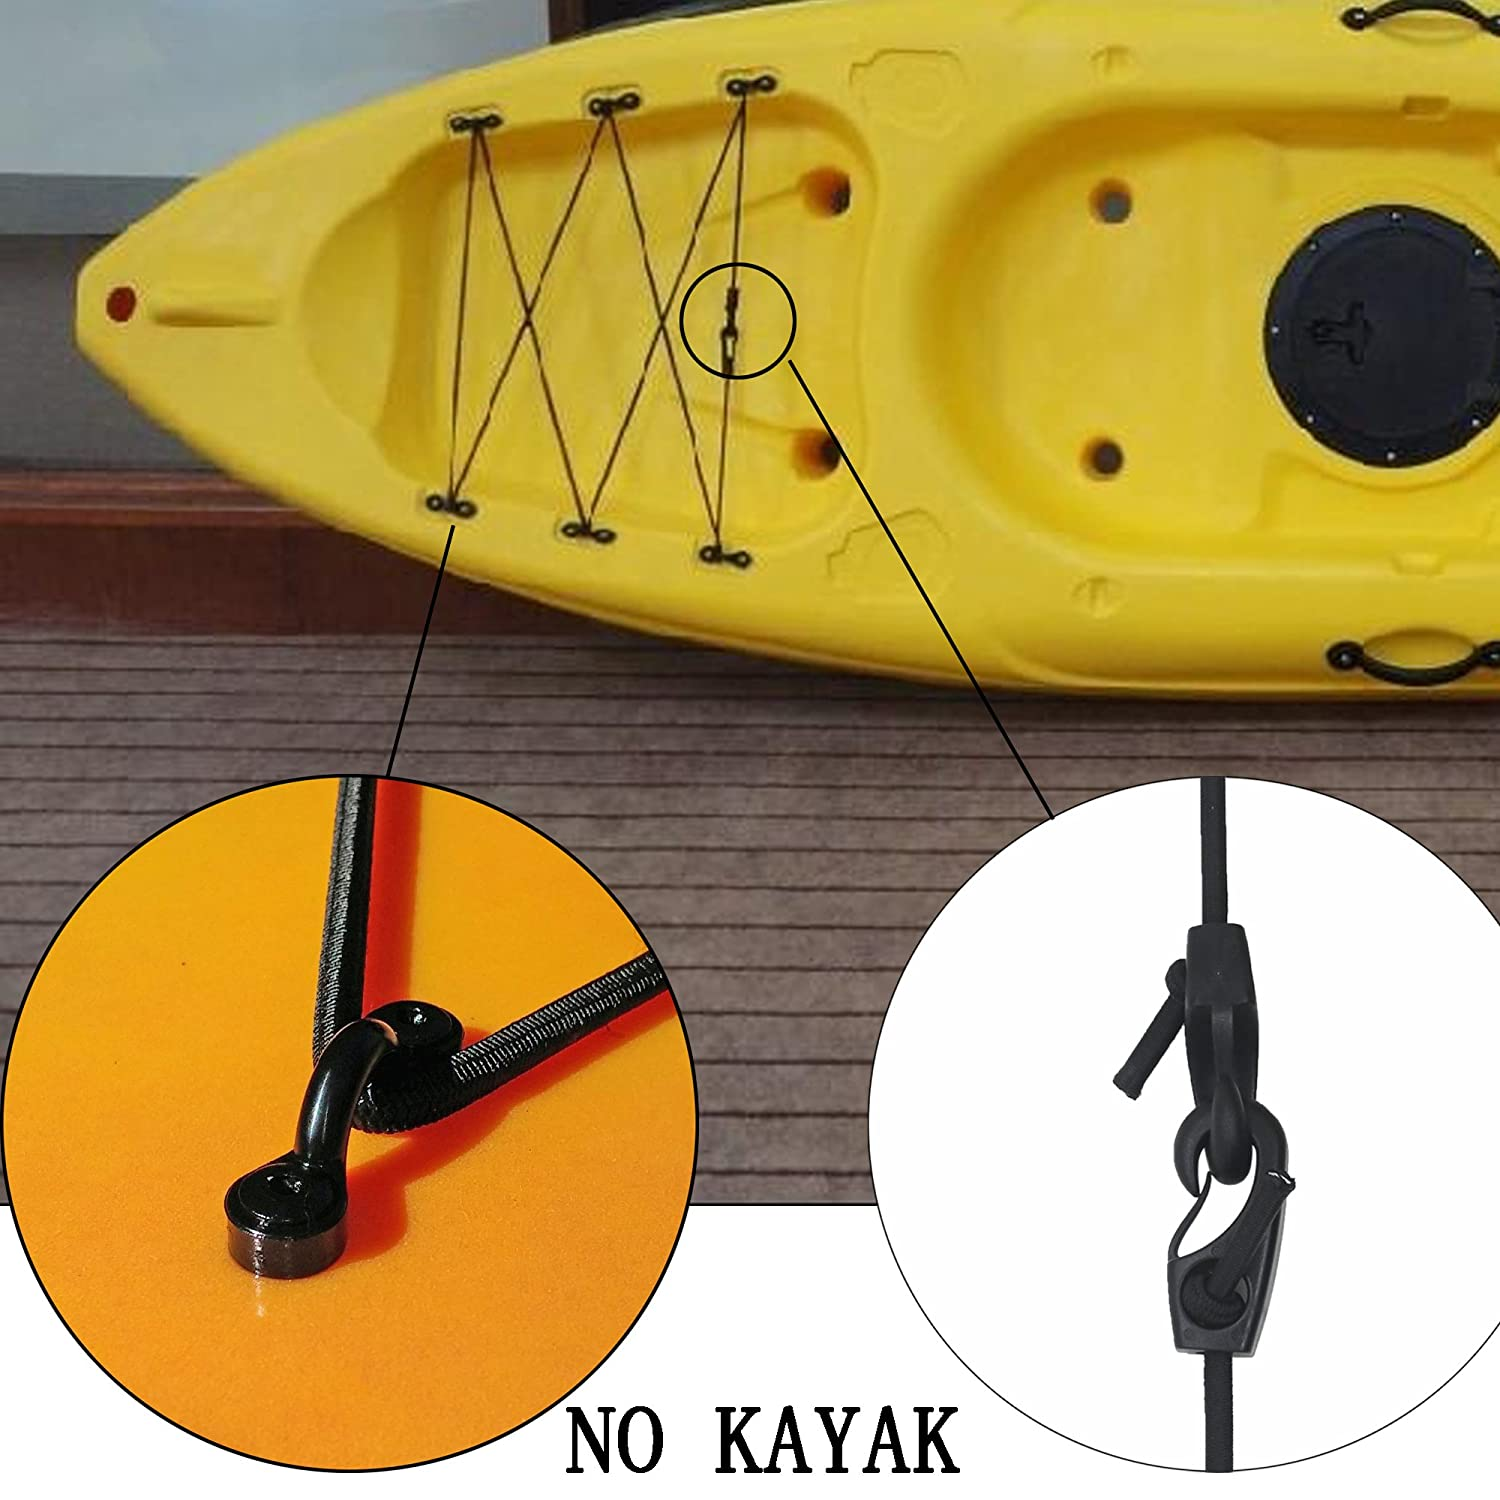 in Kayak Bungee Rigging Kit 8 Feet Black with screws and rivets YYST Sit